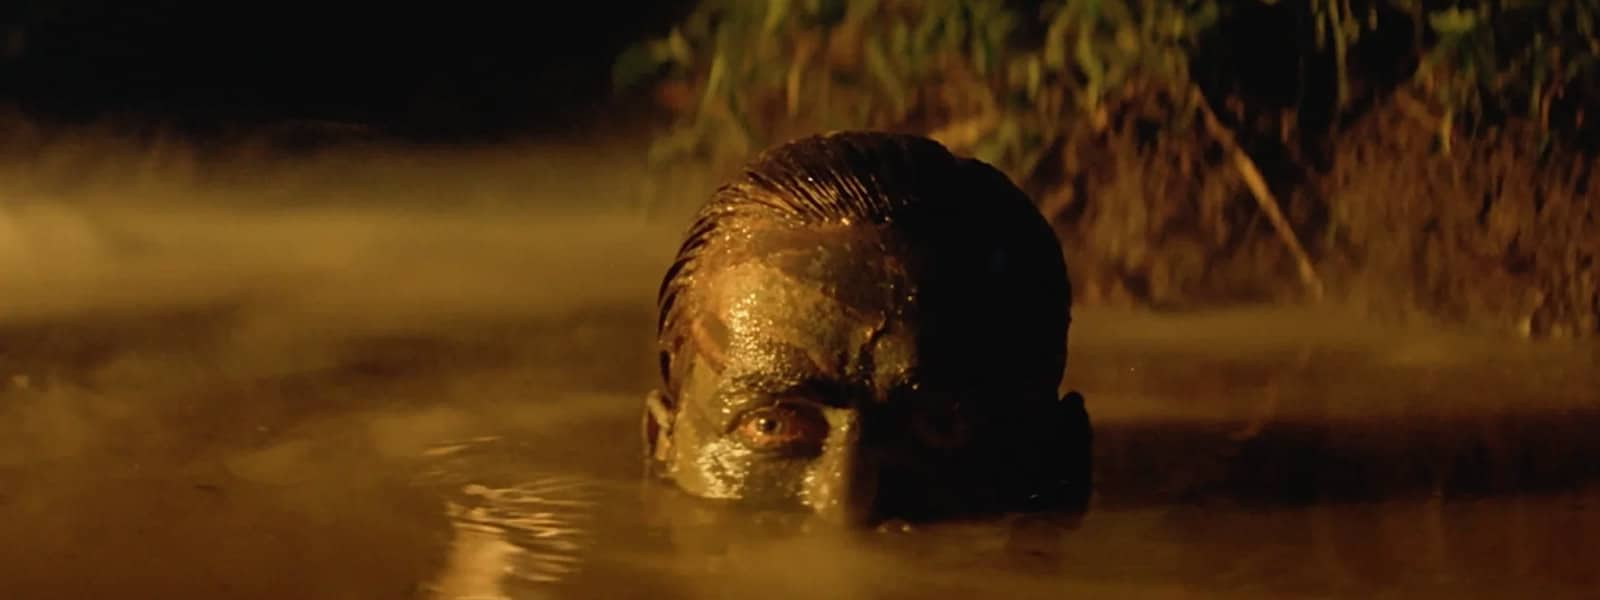 Sensual Sound Technology in <i>Apocalypse Now Final Cut</i>